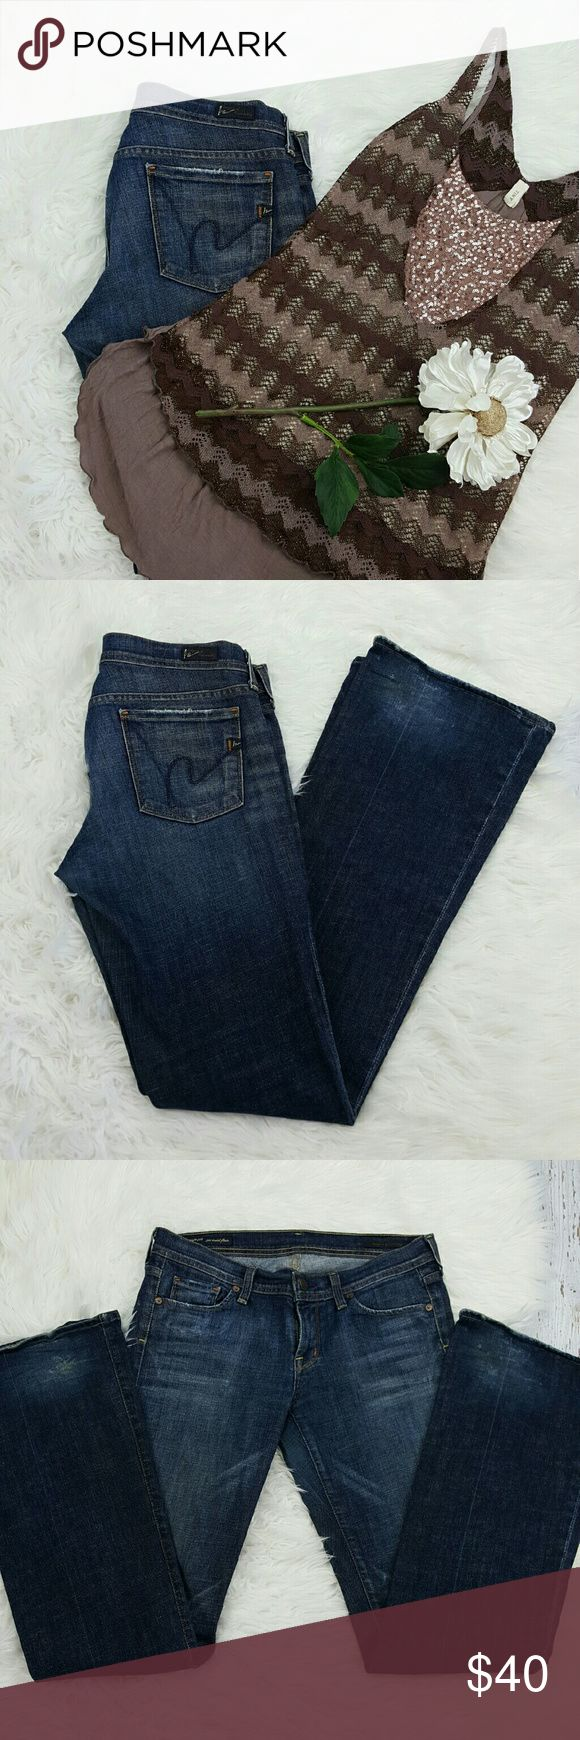 "💞SALE Citizens of Humanity Low Waist Flair Jeans Awesome Citizens of Humanity Low Waist Flair Premium Denim Jeans 35"" Inseam 8"" Rise 98% Cotton 2% Elastin Citizens of Humanity Jeans Flare & Wide Leg"